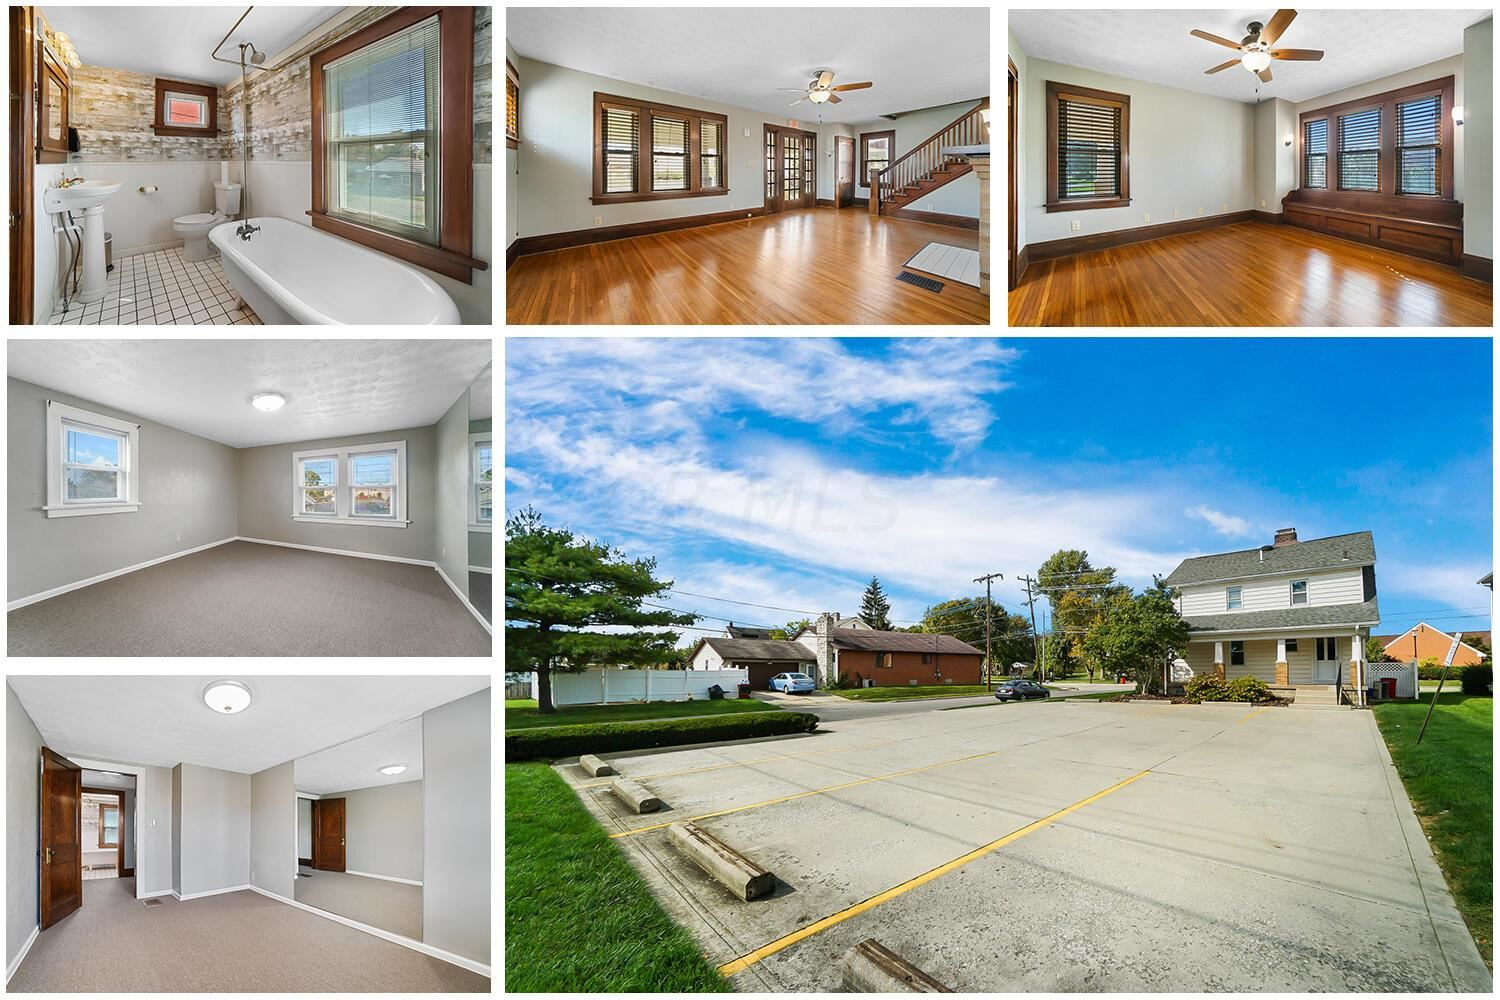 Photo of 4238 Broadway, Grove City, OH 43123 (MLS # 221040991)